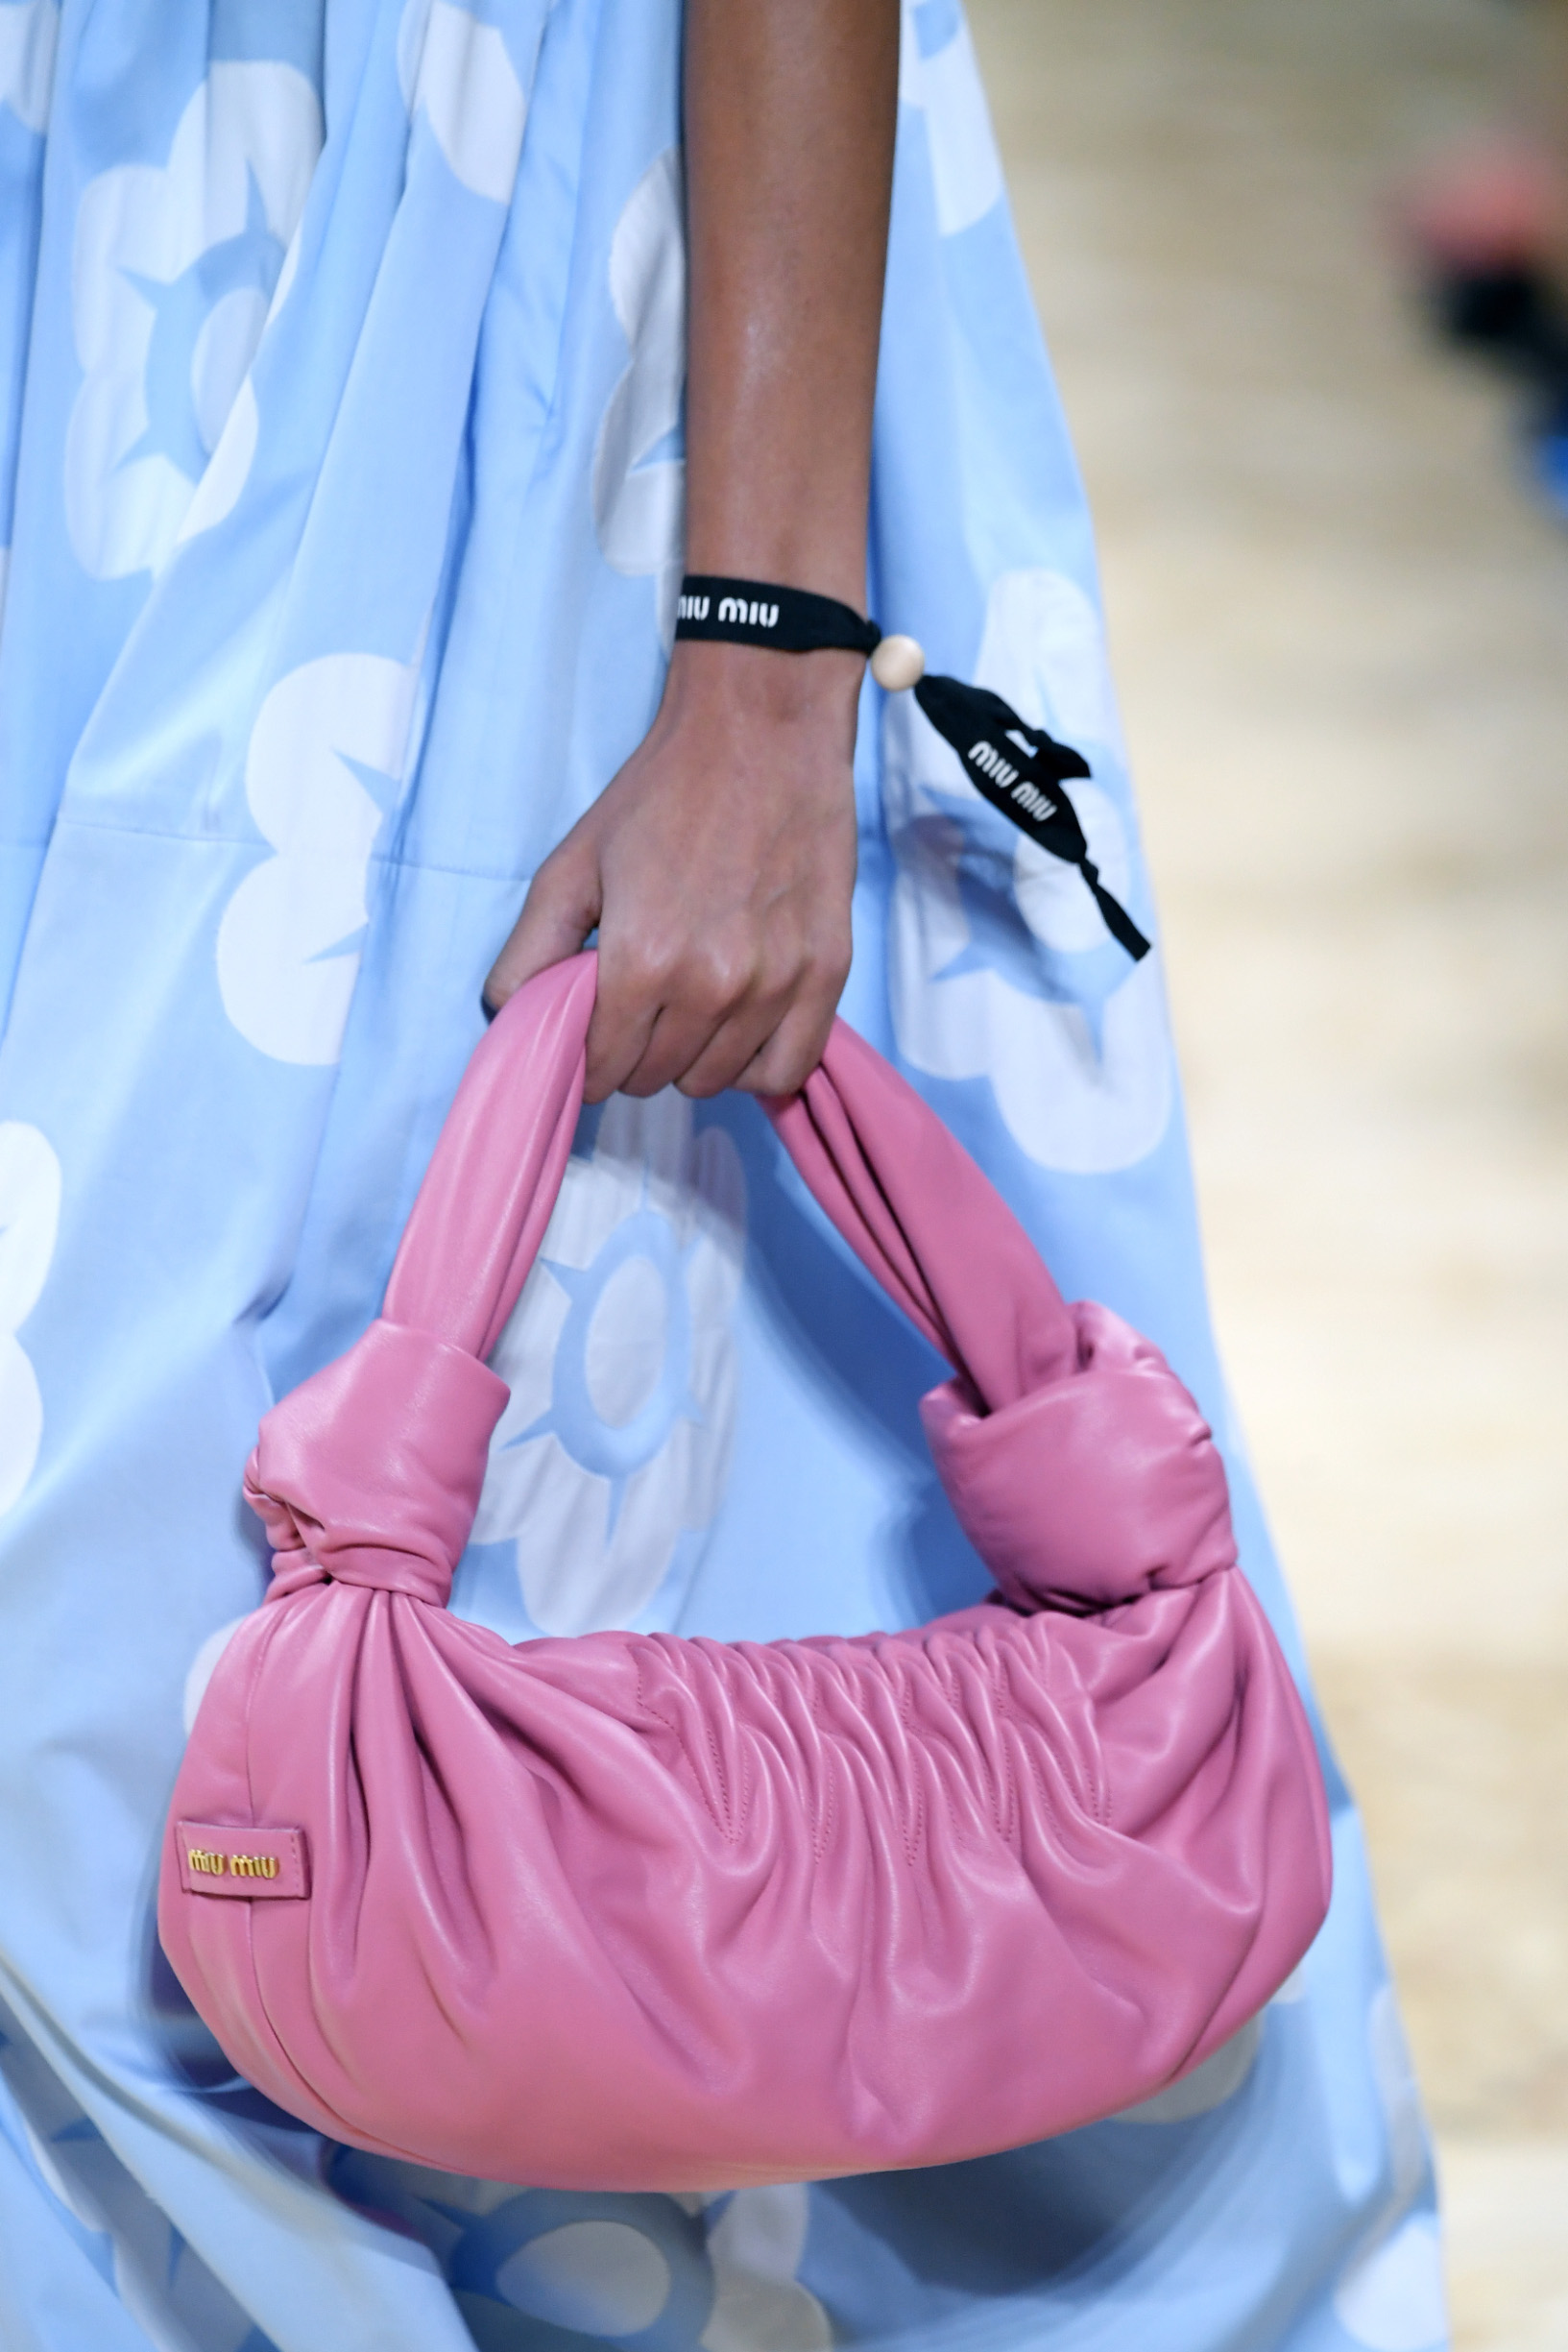 PARIS, FRANCE - OCTOBER 01: A model, bag detail, walks the runway during the Miu Miu Womenswear Spring/Summer 2020 show as part of Paris Fashion Week on October 01, 2019 in Paris, France. (Photo by Pascal Le Segretain/Getty Images)